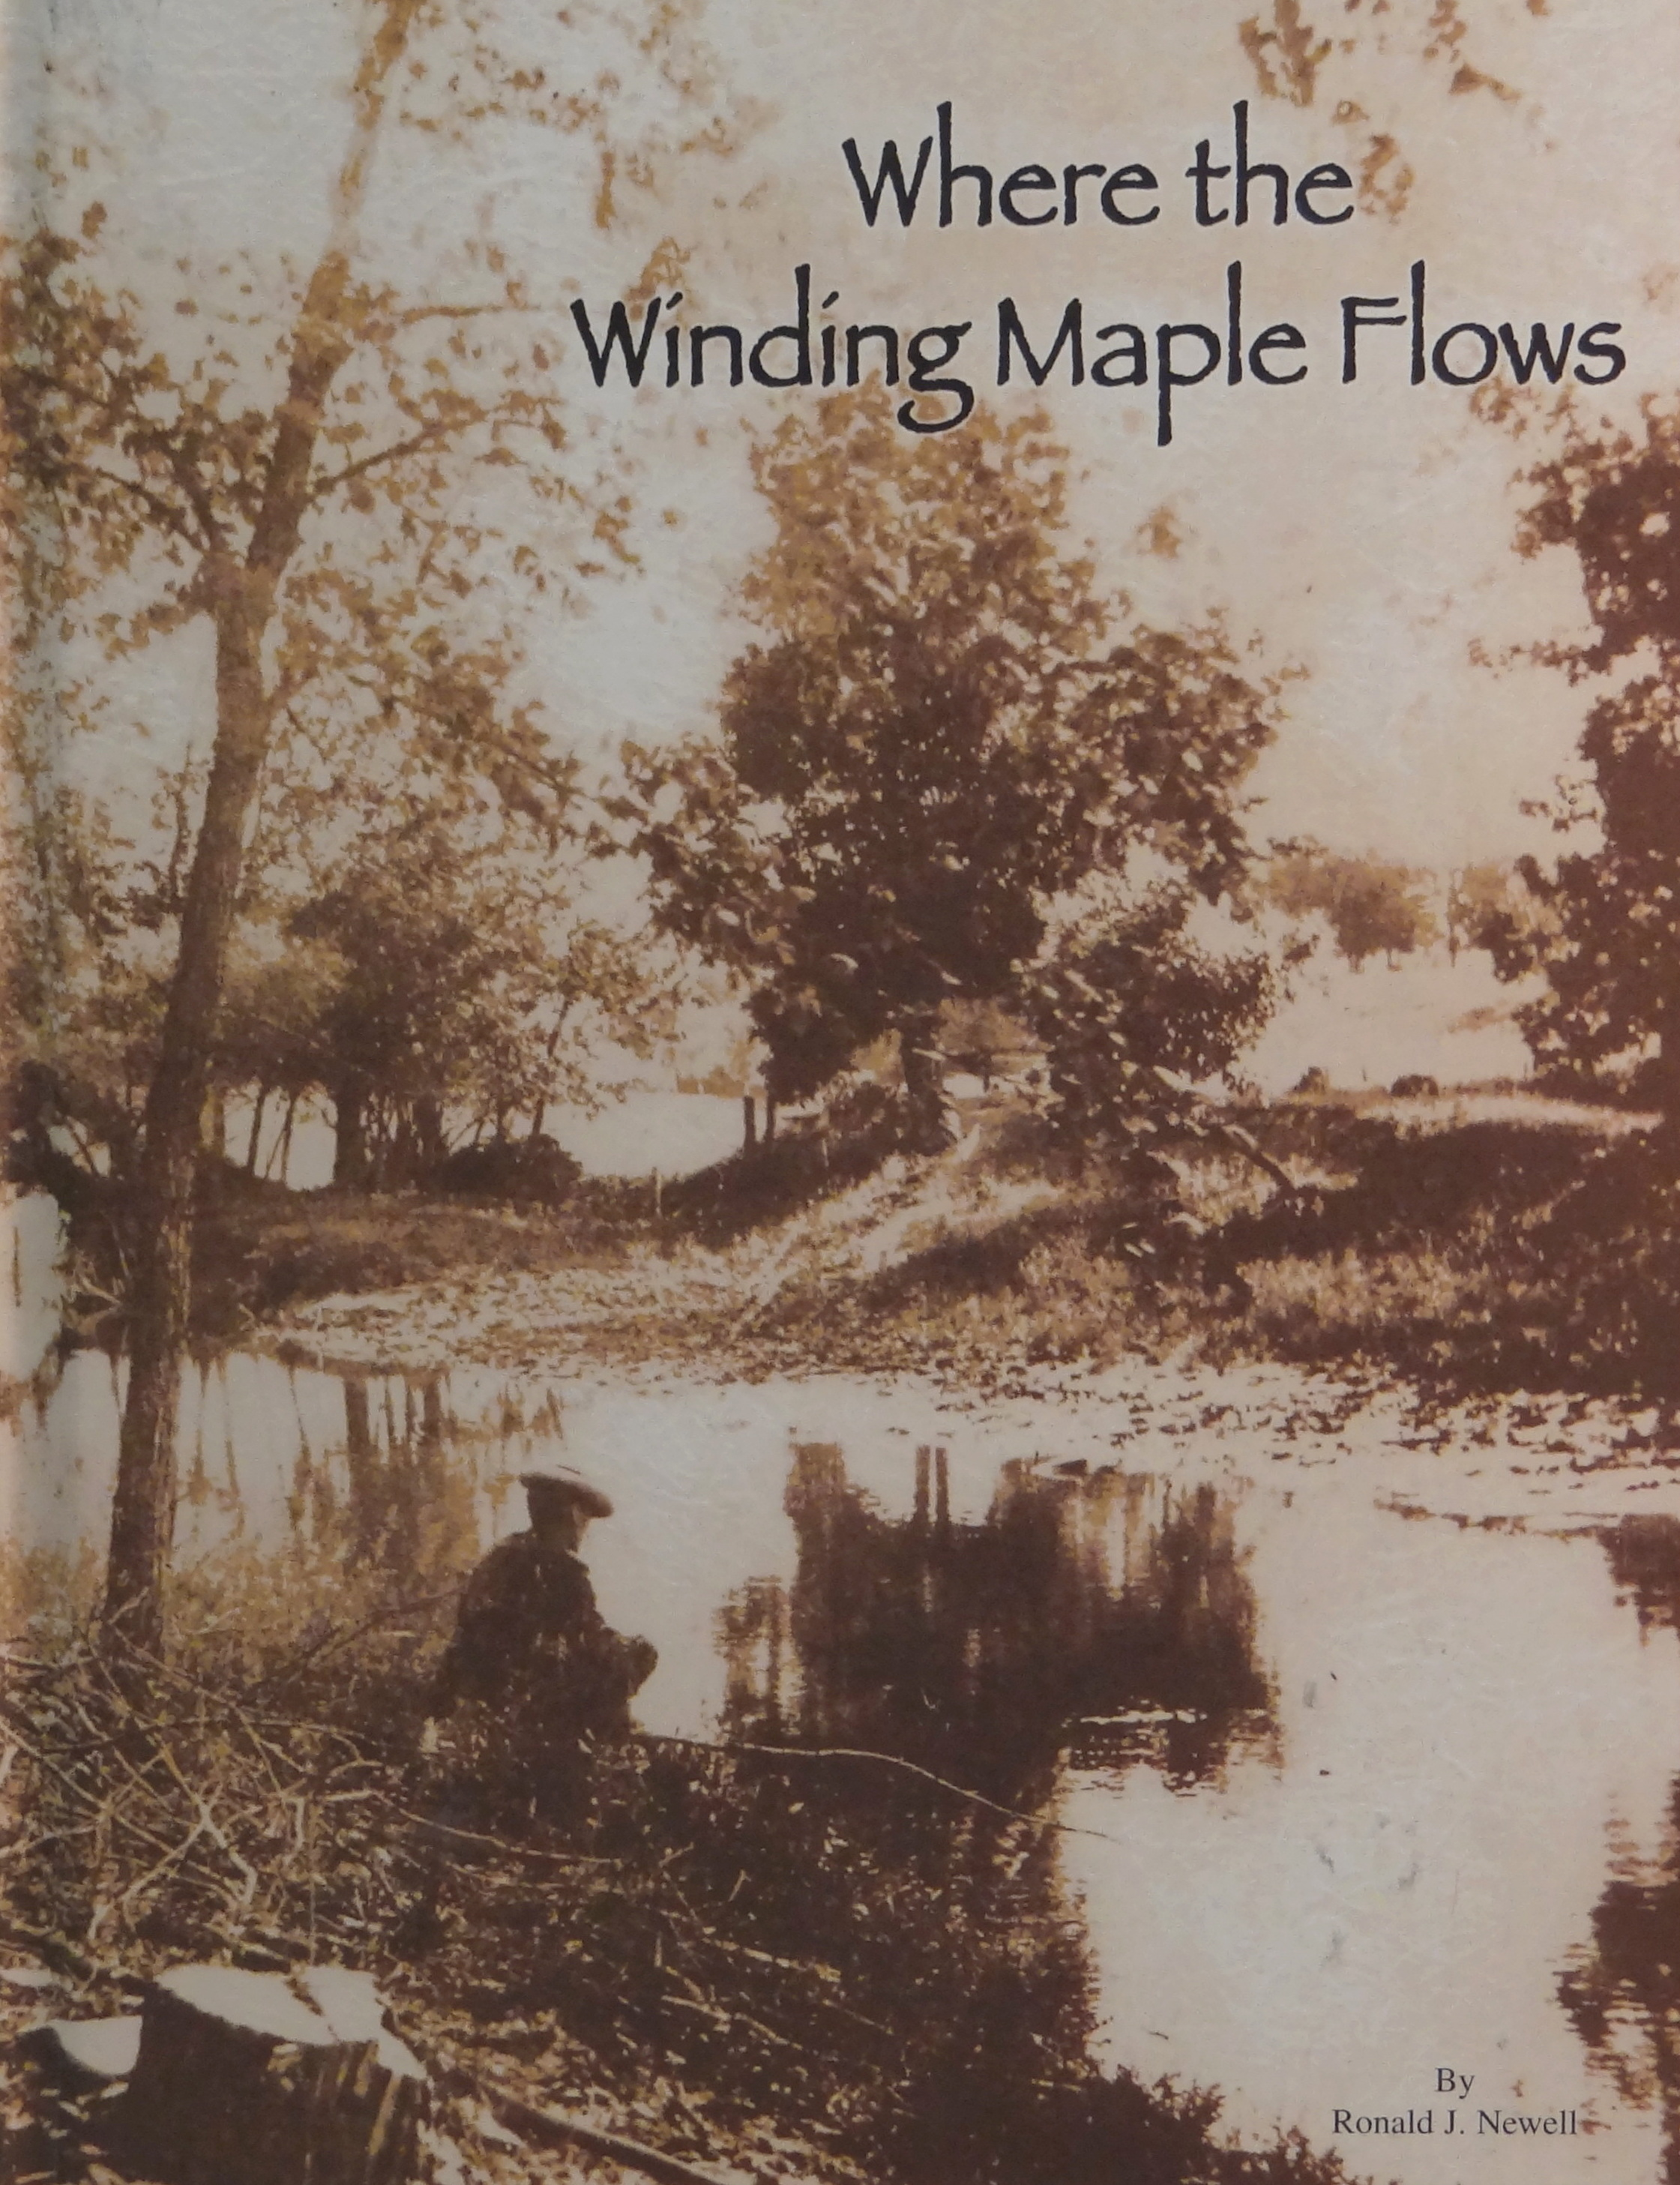 Where the Winding Maple Flows Image